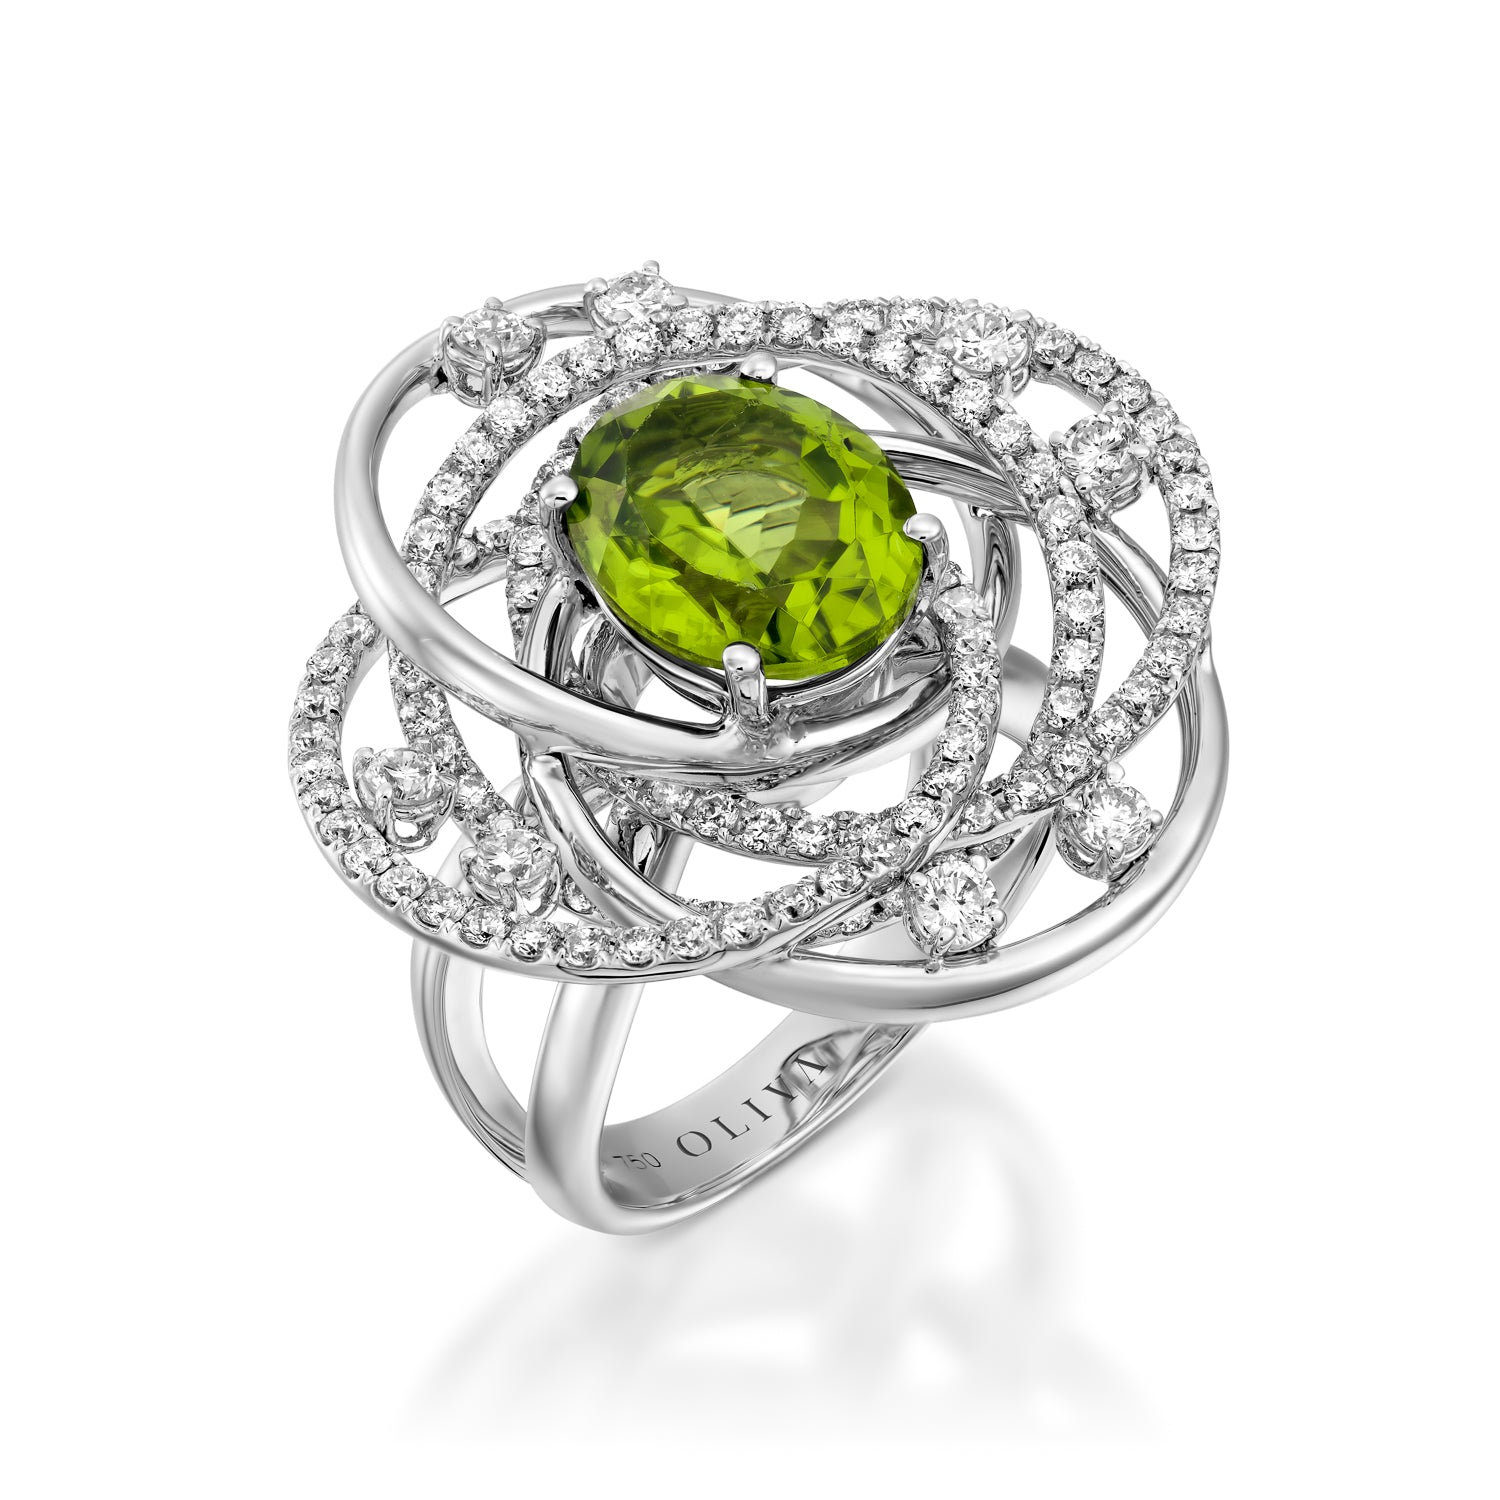 of engagement rings weddings best vintage green wedding peridot ideas